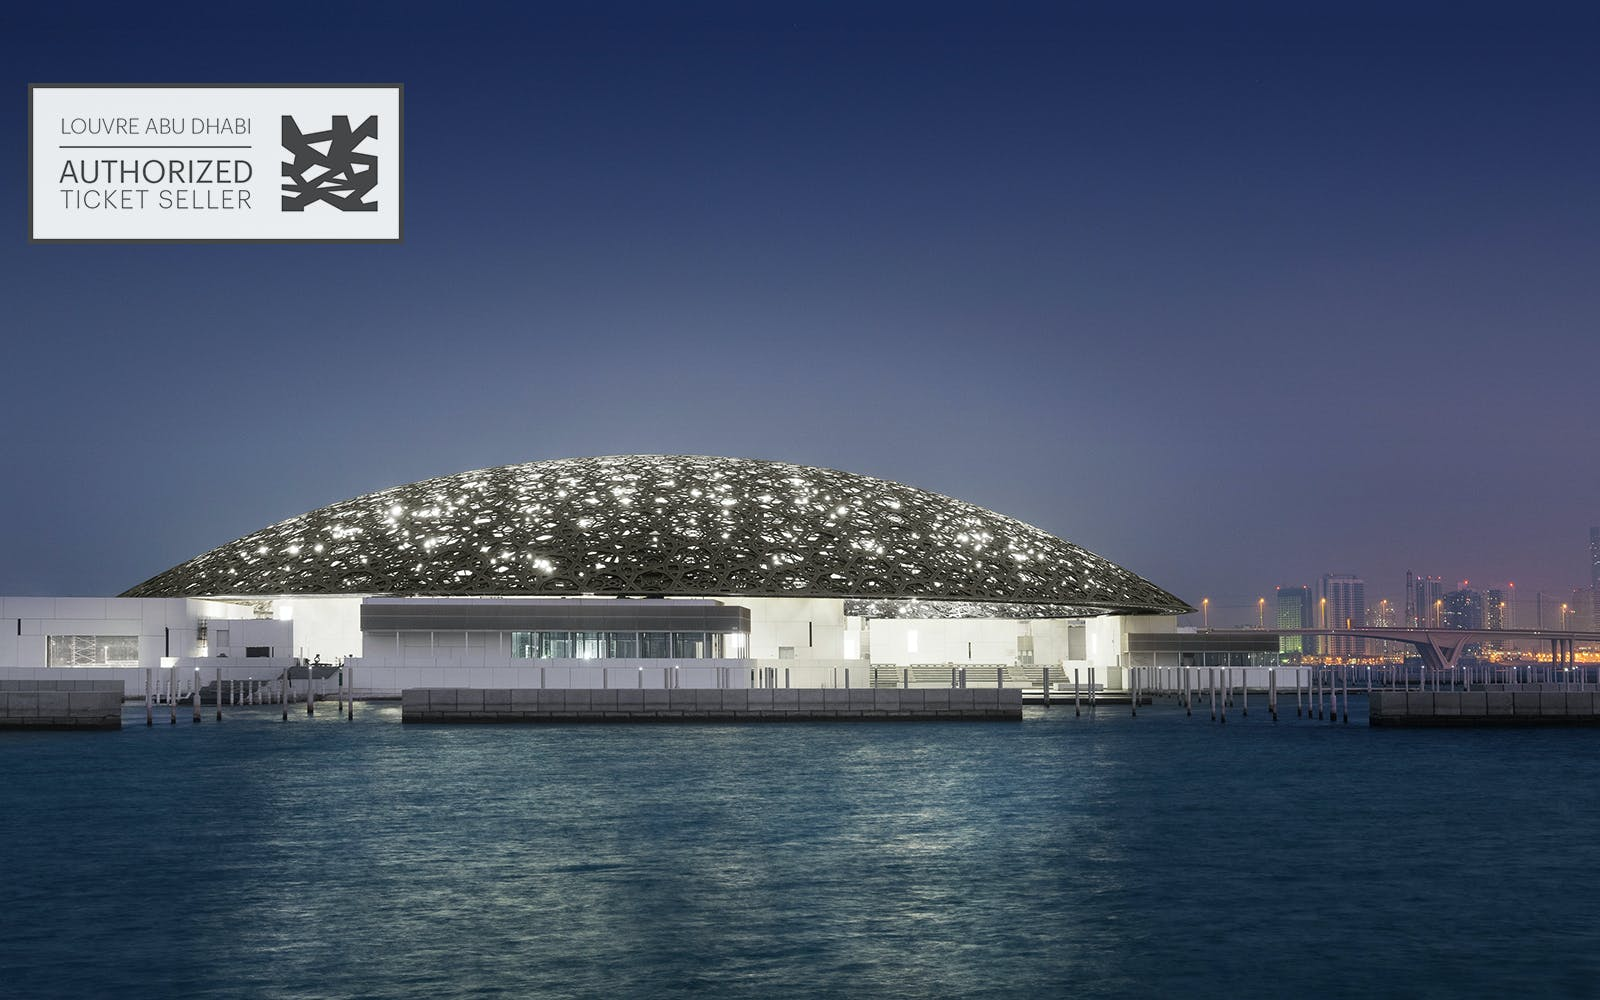 louvre abu dhabi - skip the line tickets-1